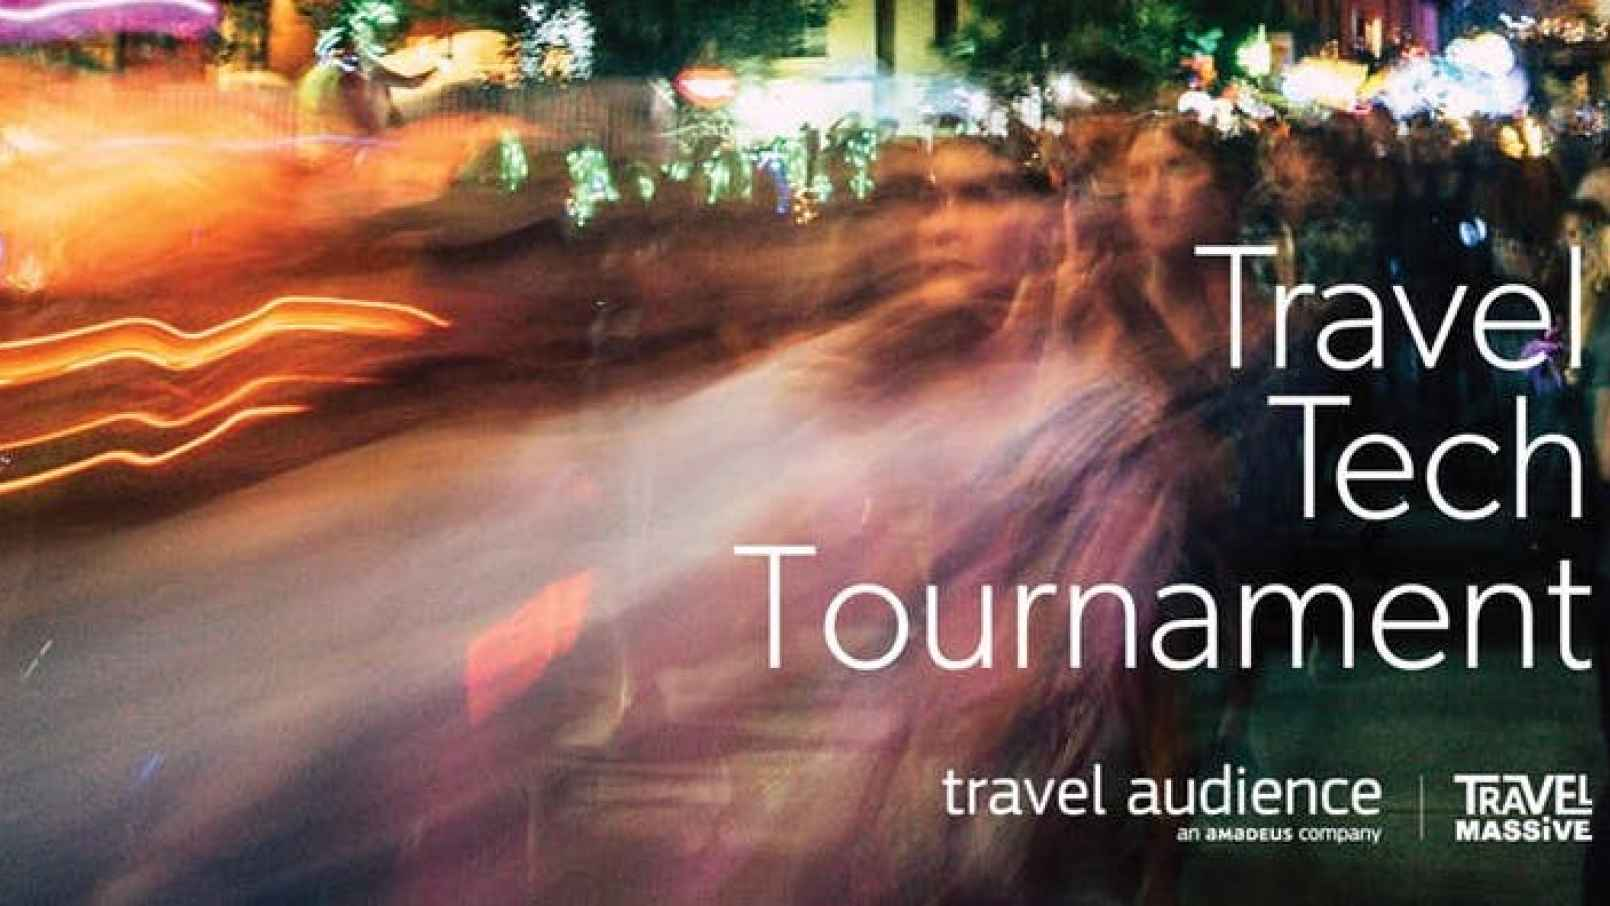 Travel Tech Startup - Submission Deadline